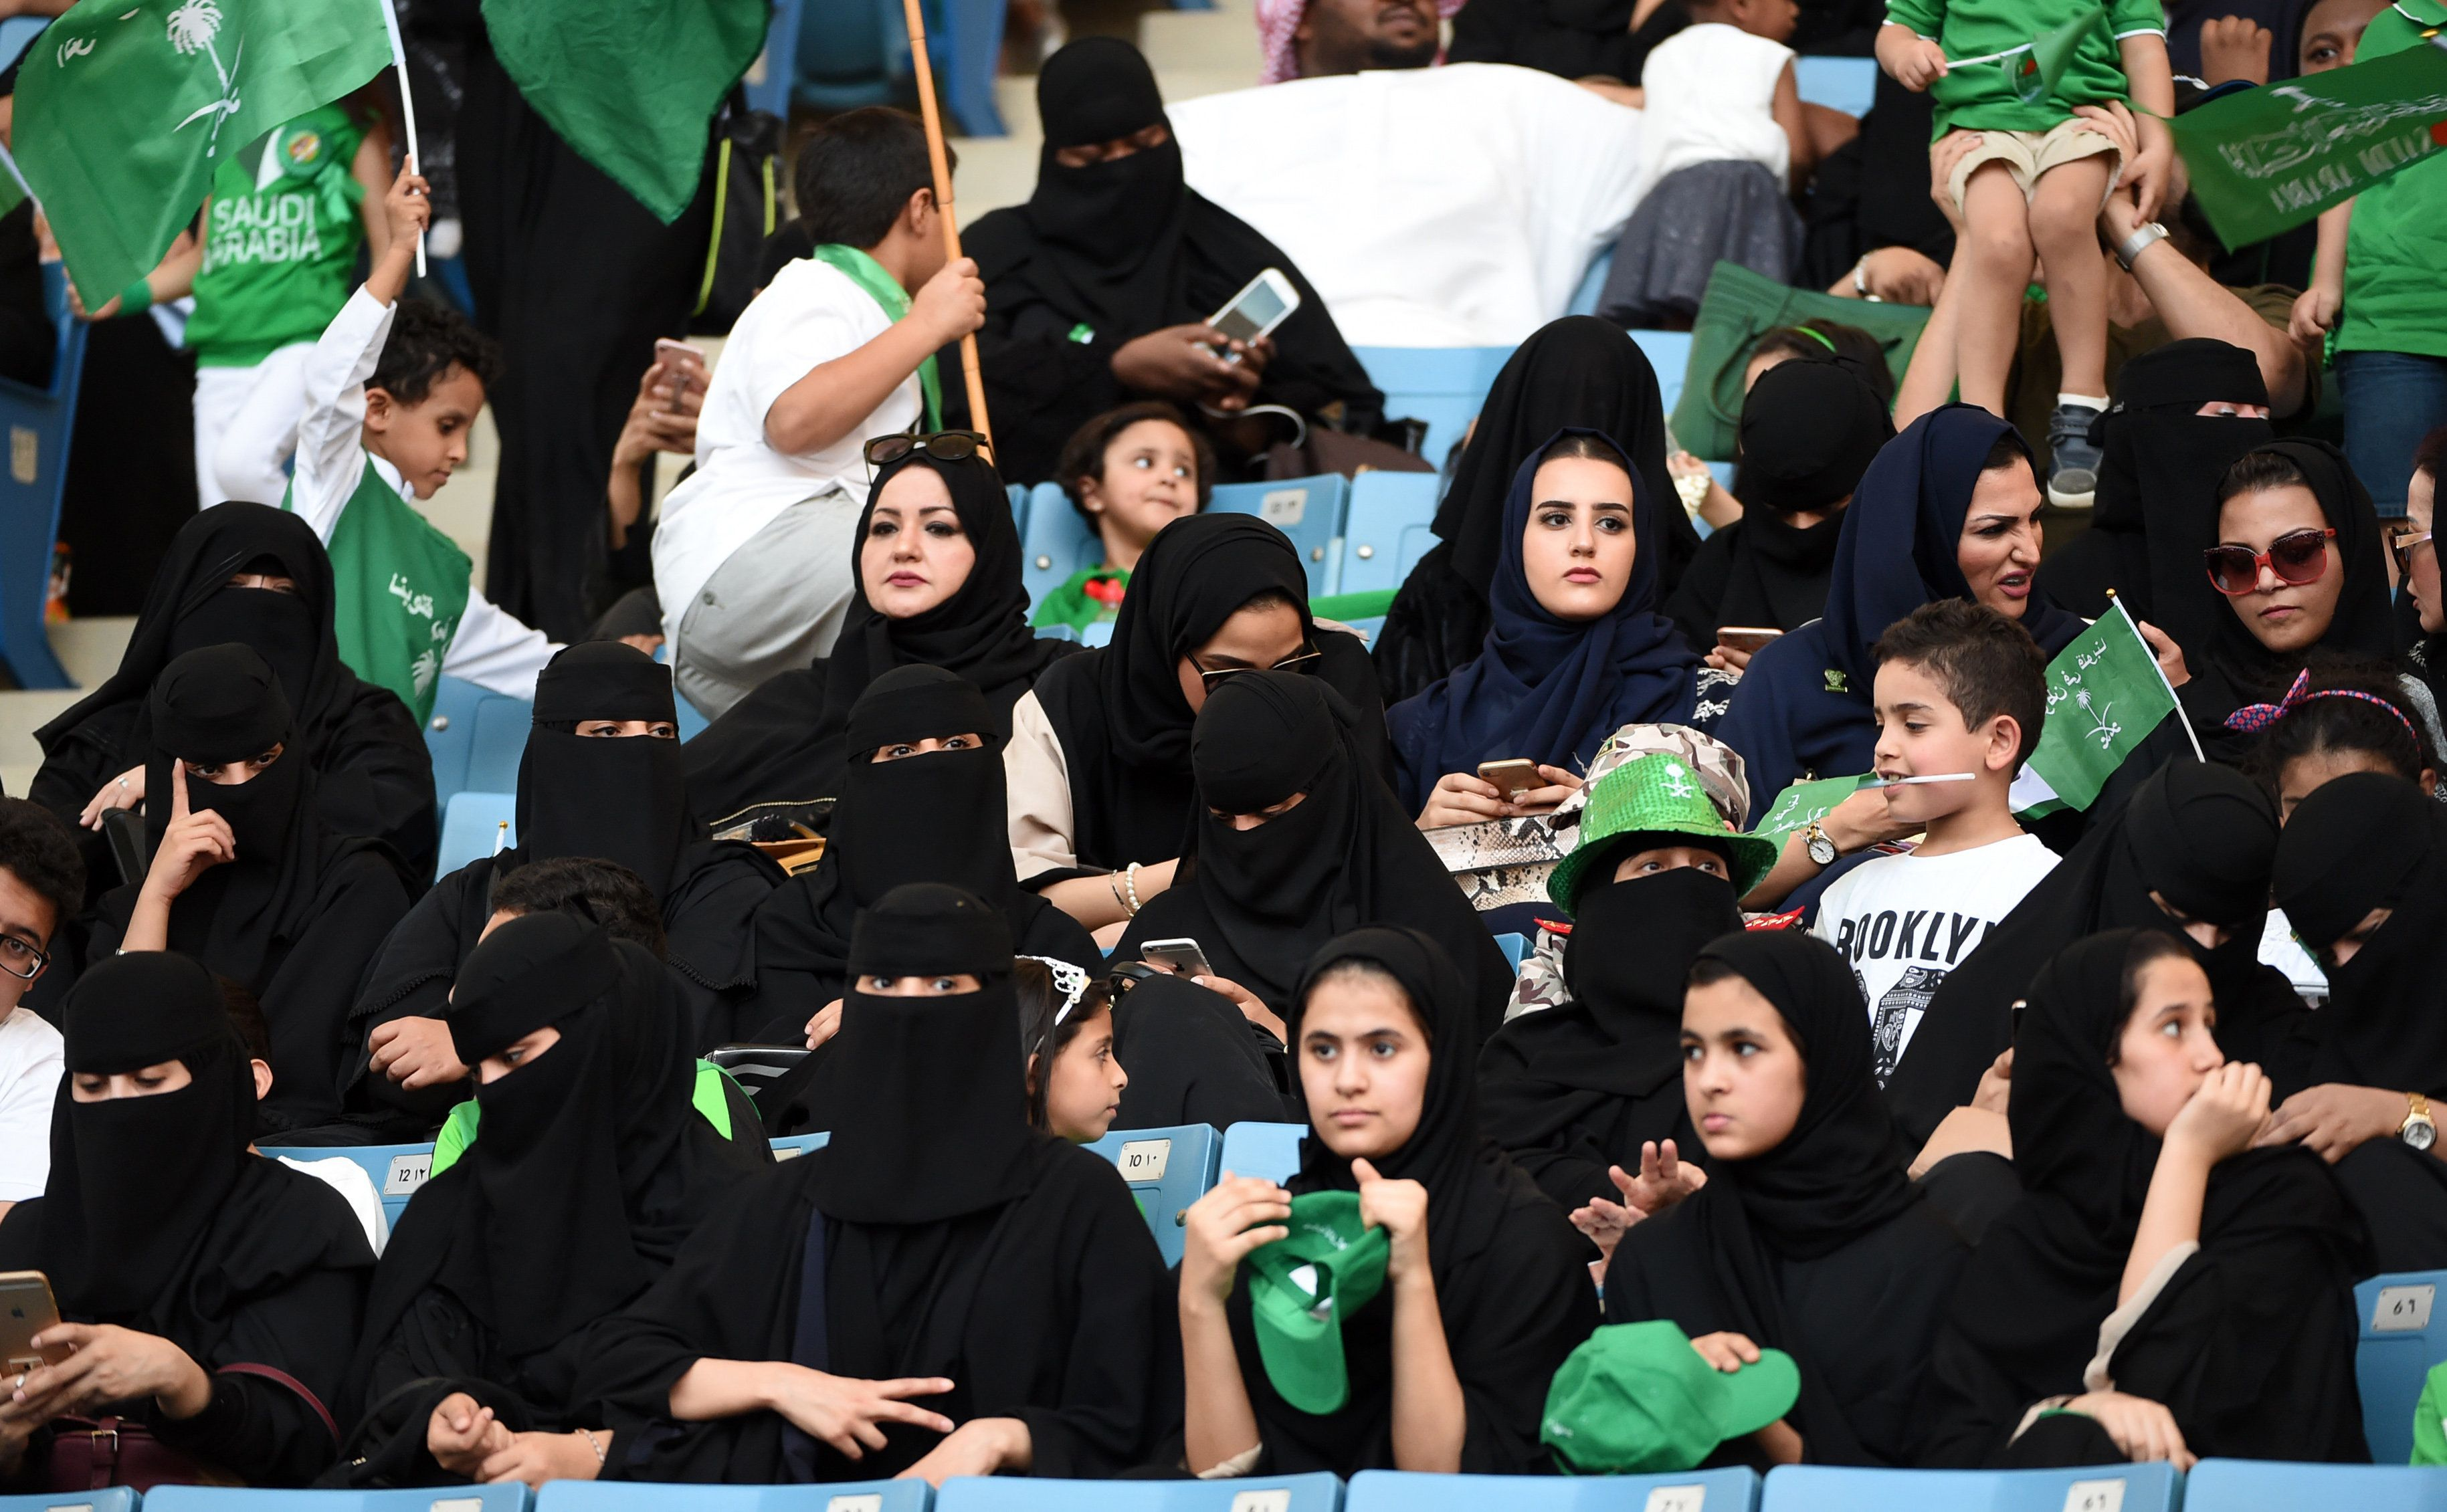 Saudi Arabia to Open Sports Stadiums to Women in Reform Push